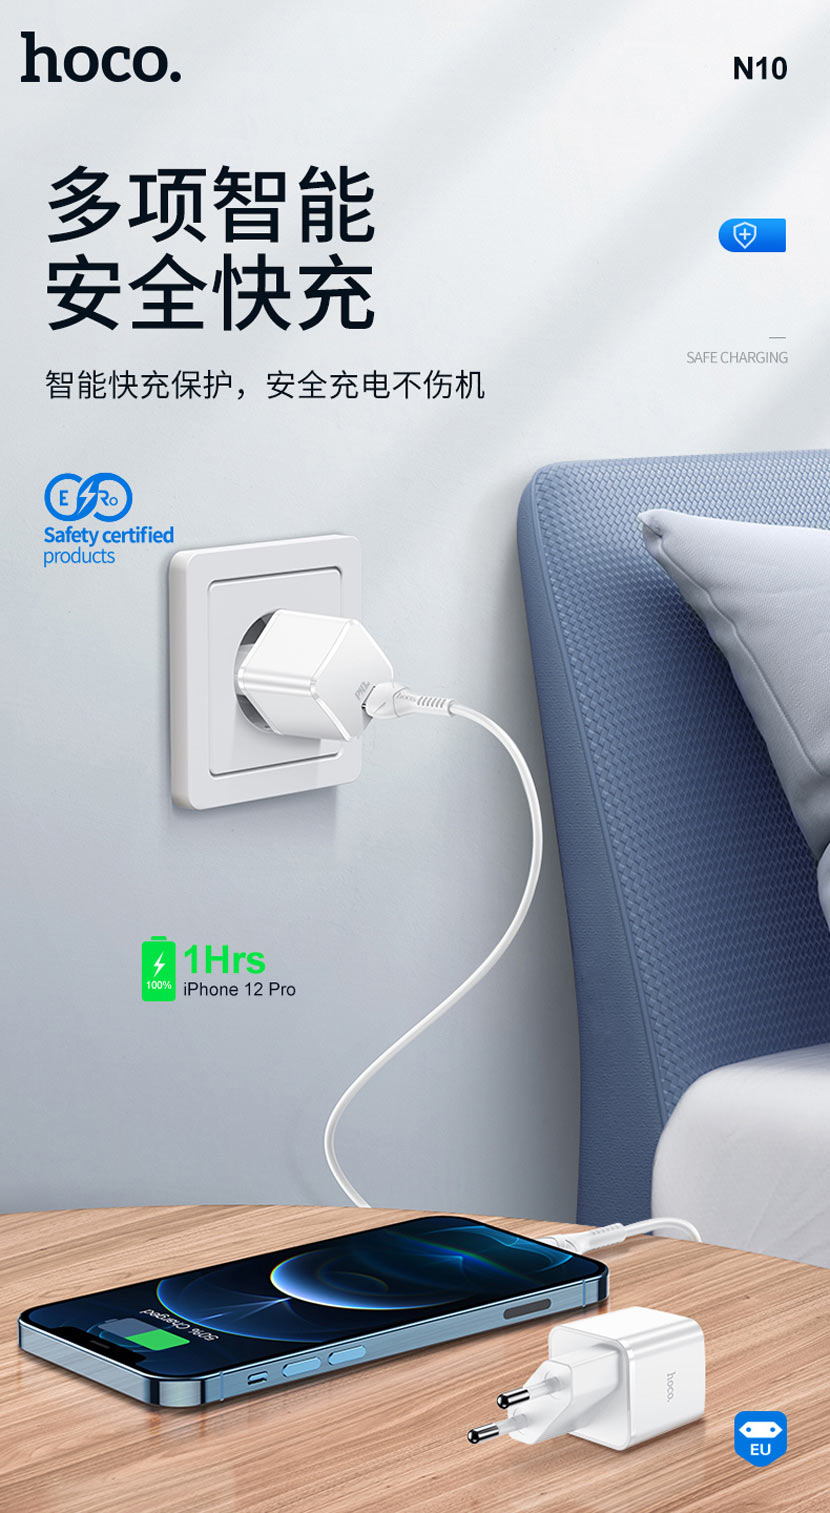 hoco news n10 n13 starter single port pd20w wall charger safe cn